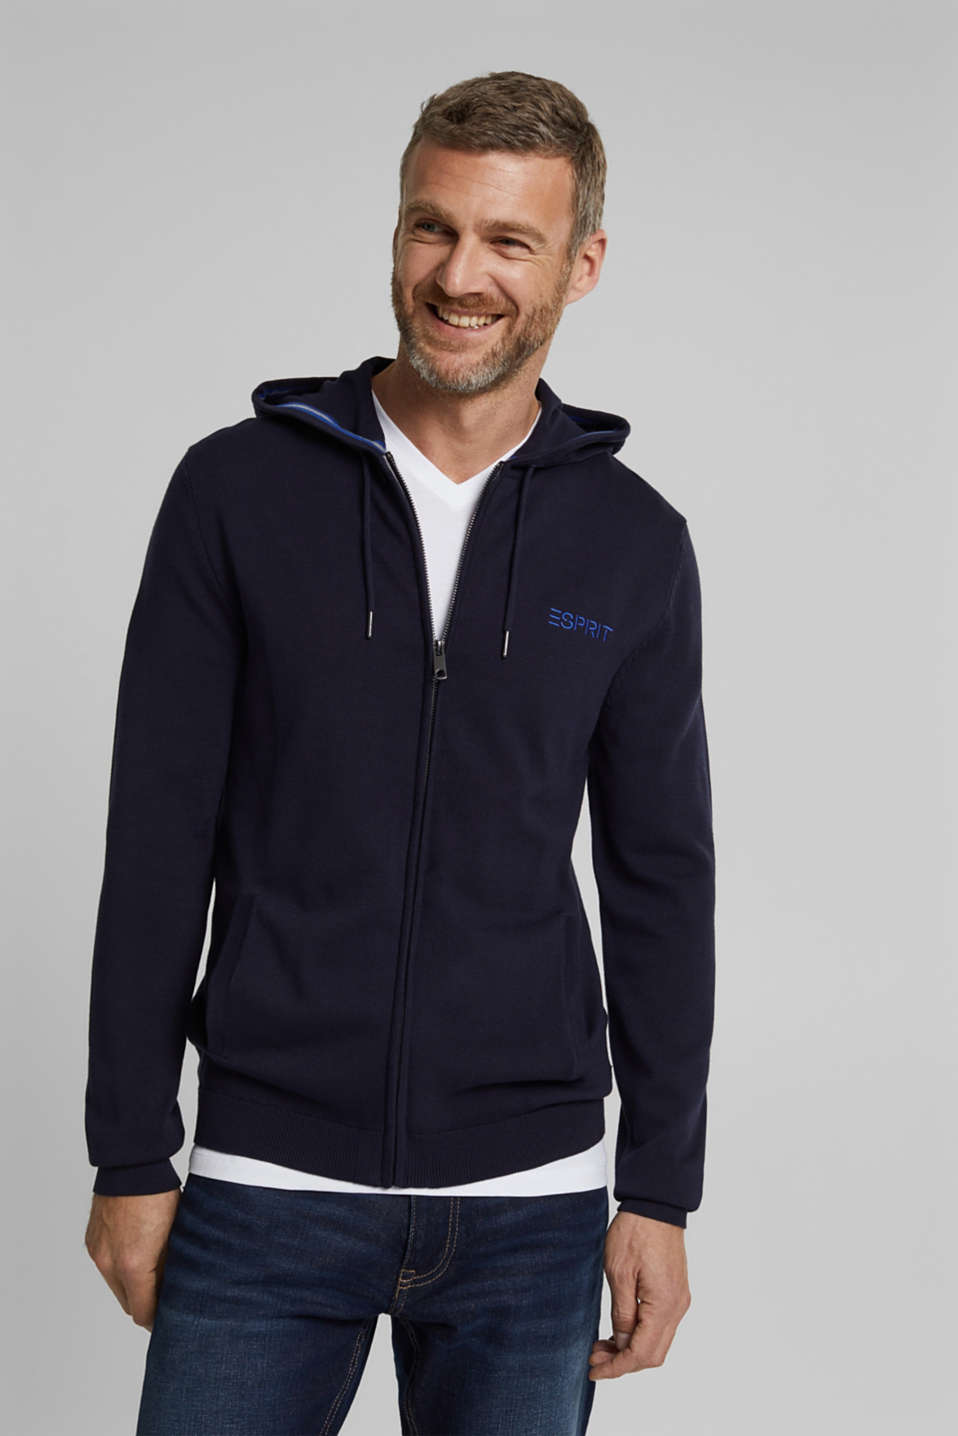 Esprit - logo zip sweater